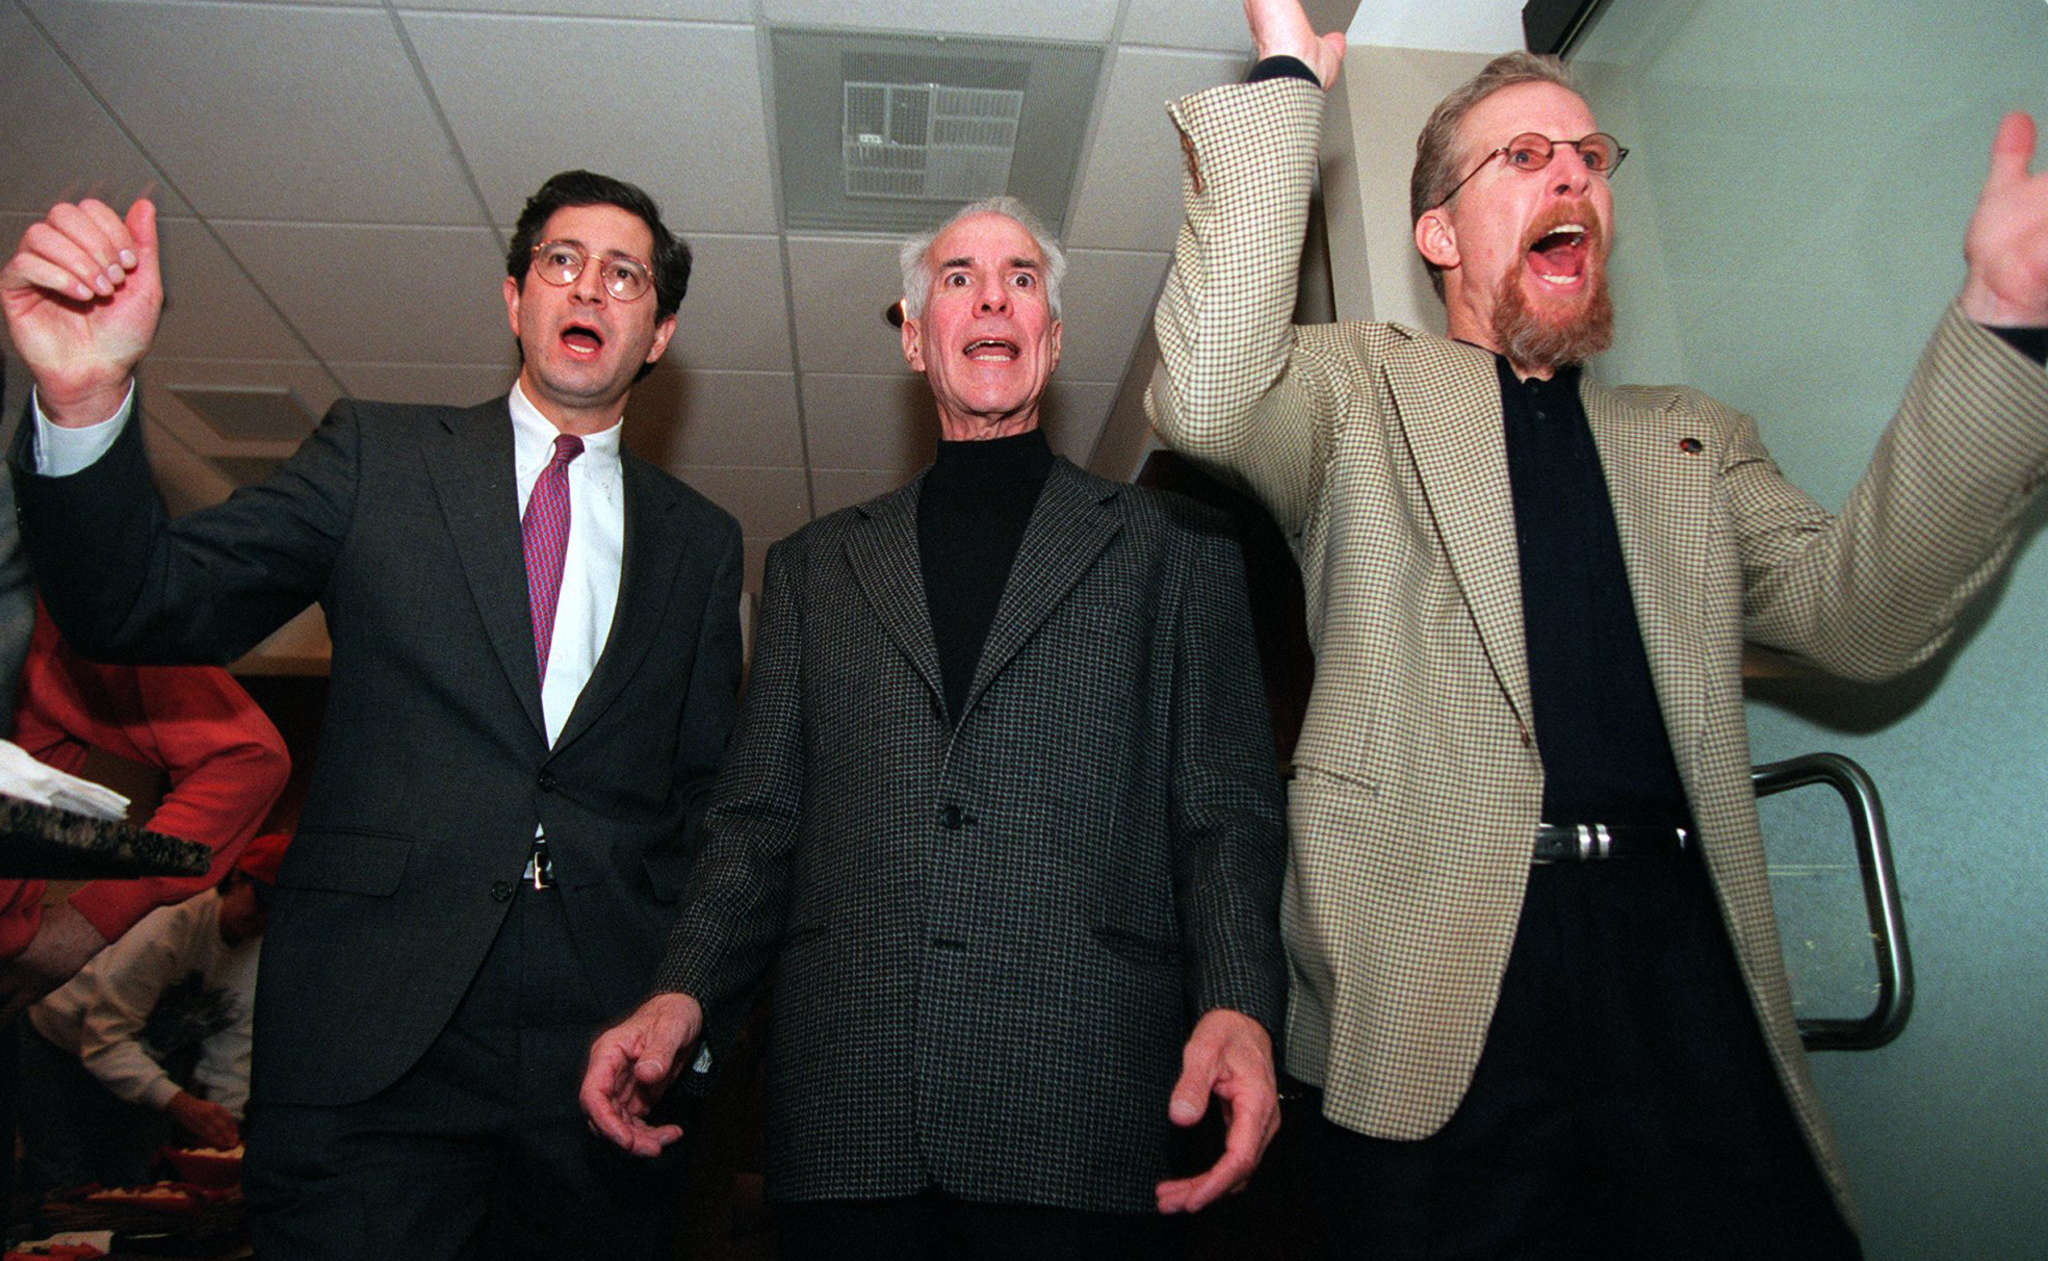 Cheering the Sixers in 1996 were (from left) Brian Roberts, Ed Snider, and Pat Croce. Roberts says he trusted Snider as a mentor.